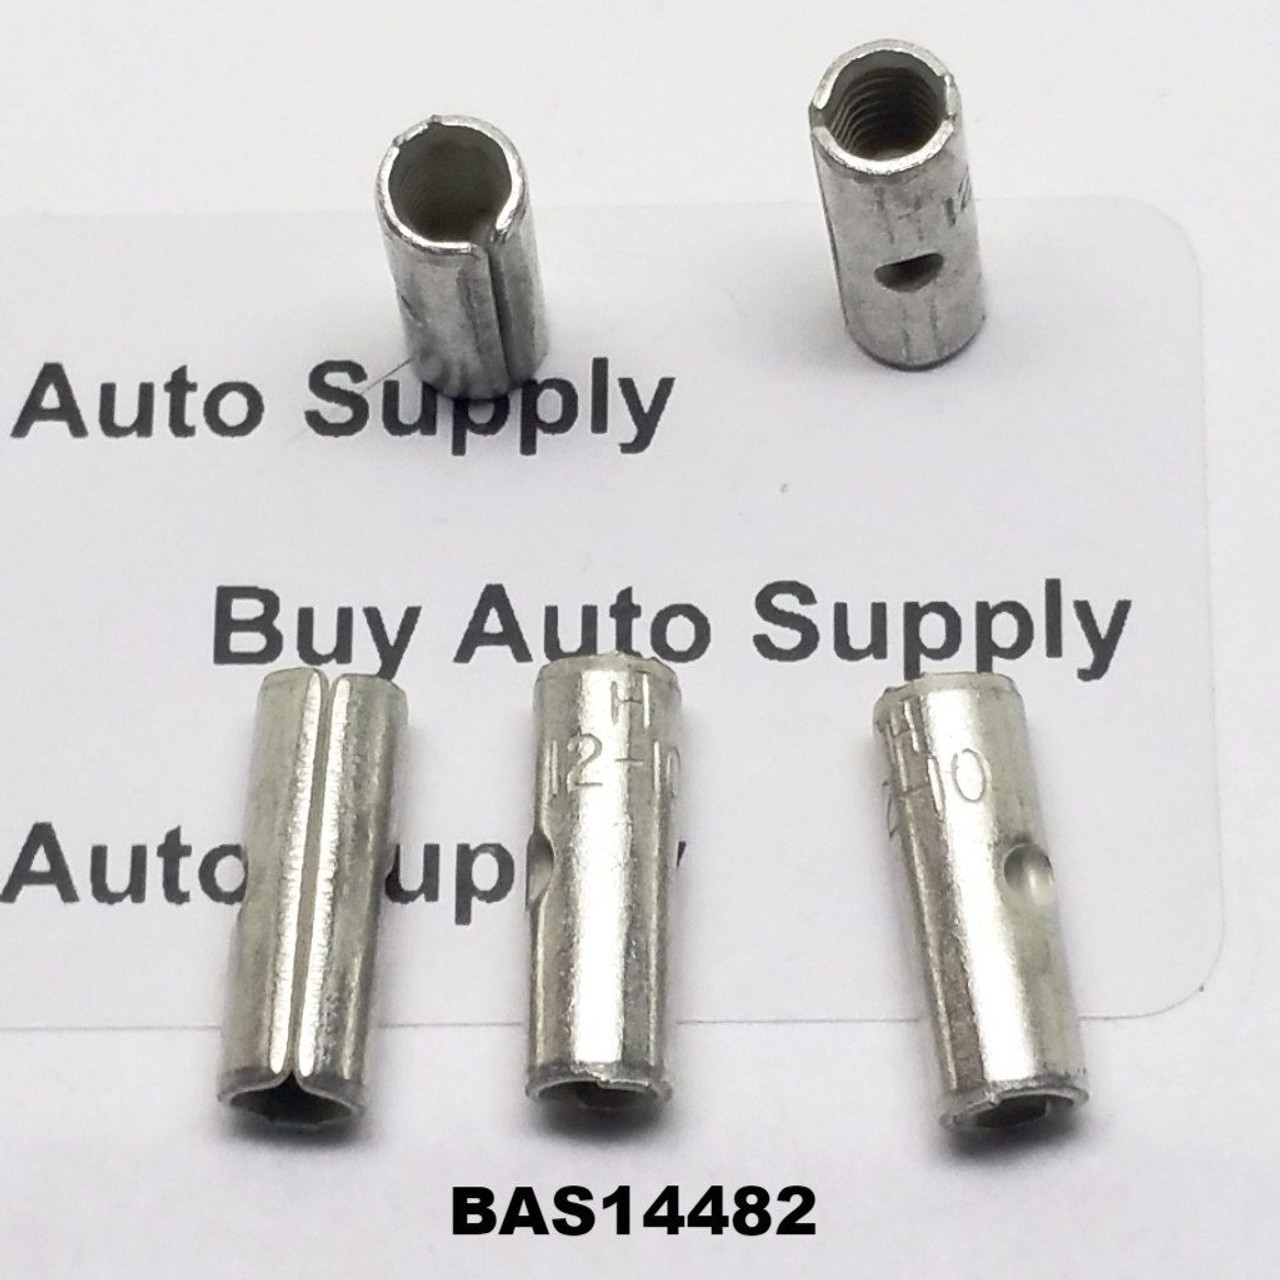 12-10 Non-Insulated Butt Connector - Made in USA- BAS14482